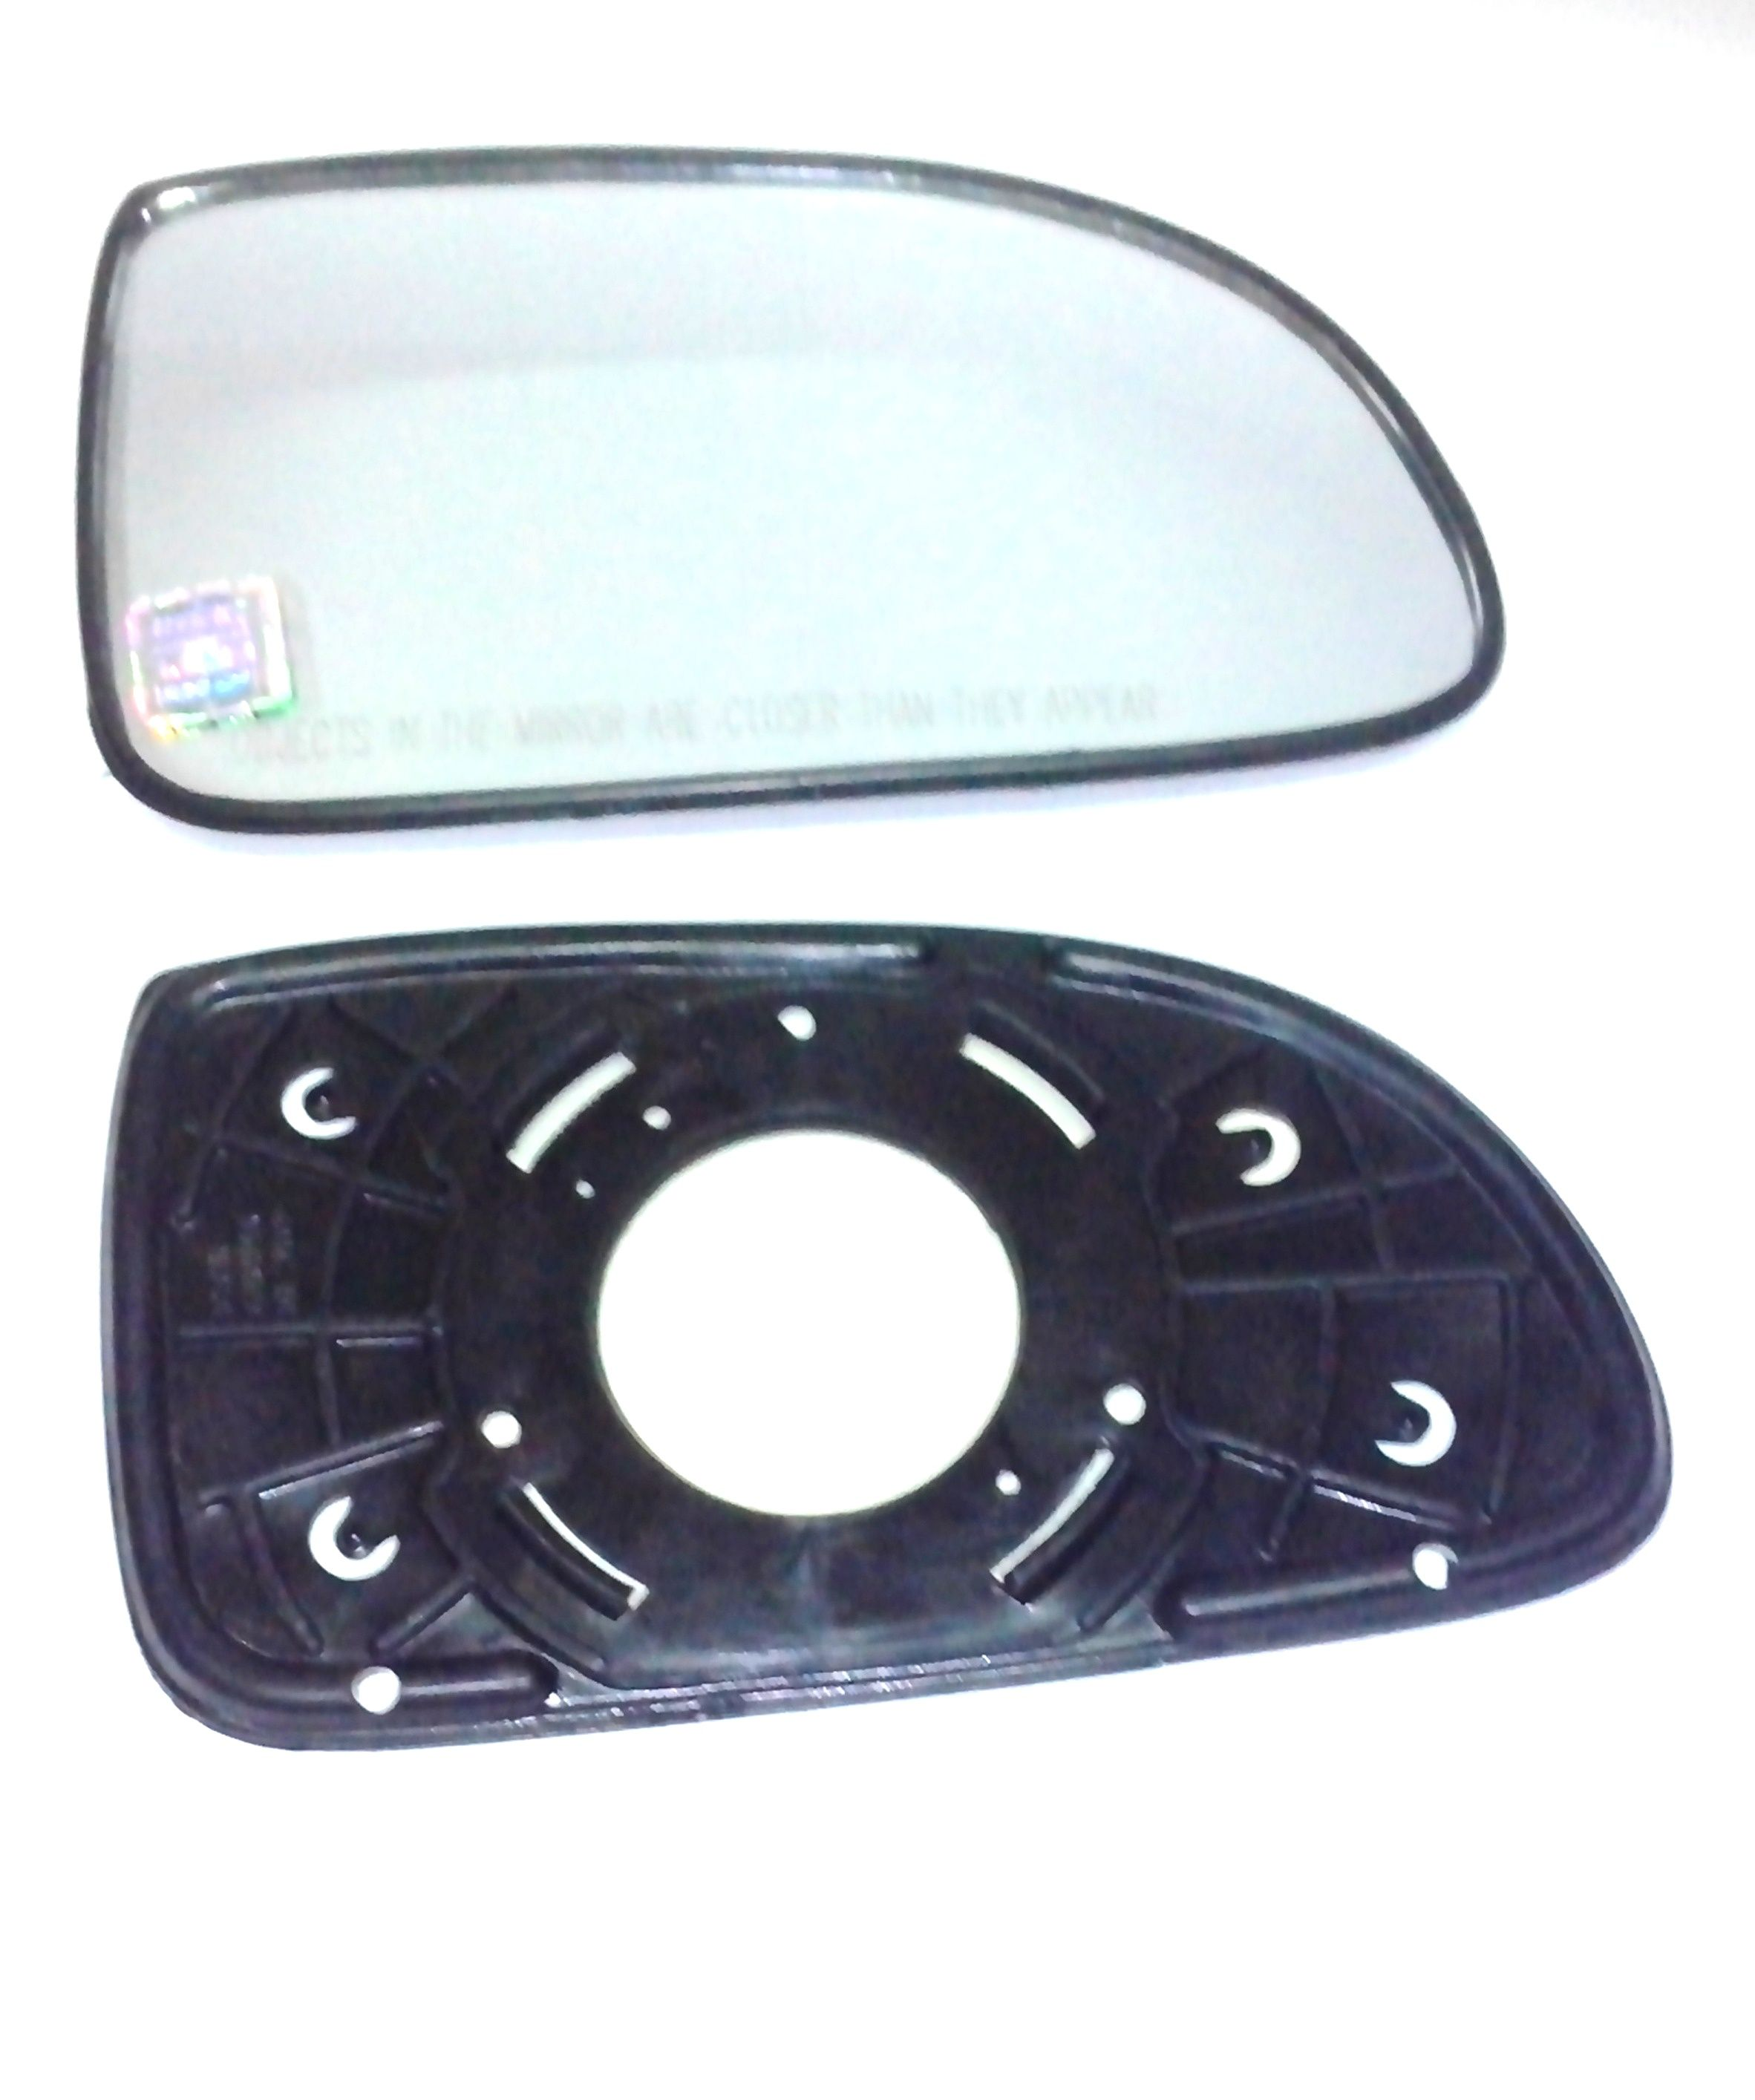 MANTRA-CONVEX MIRROR PLATES (SUB MIRROR PLATES) FOR HYUNDAI VERNA T-3 LEFT SIDE